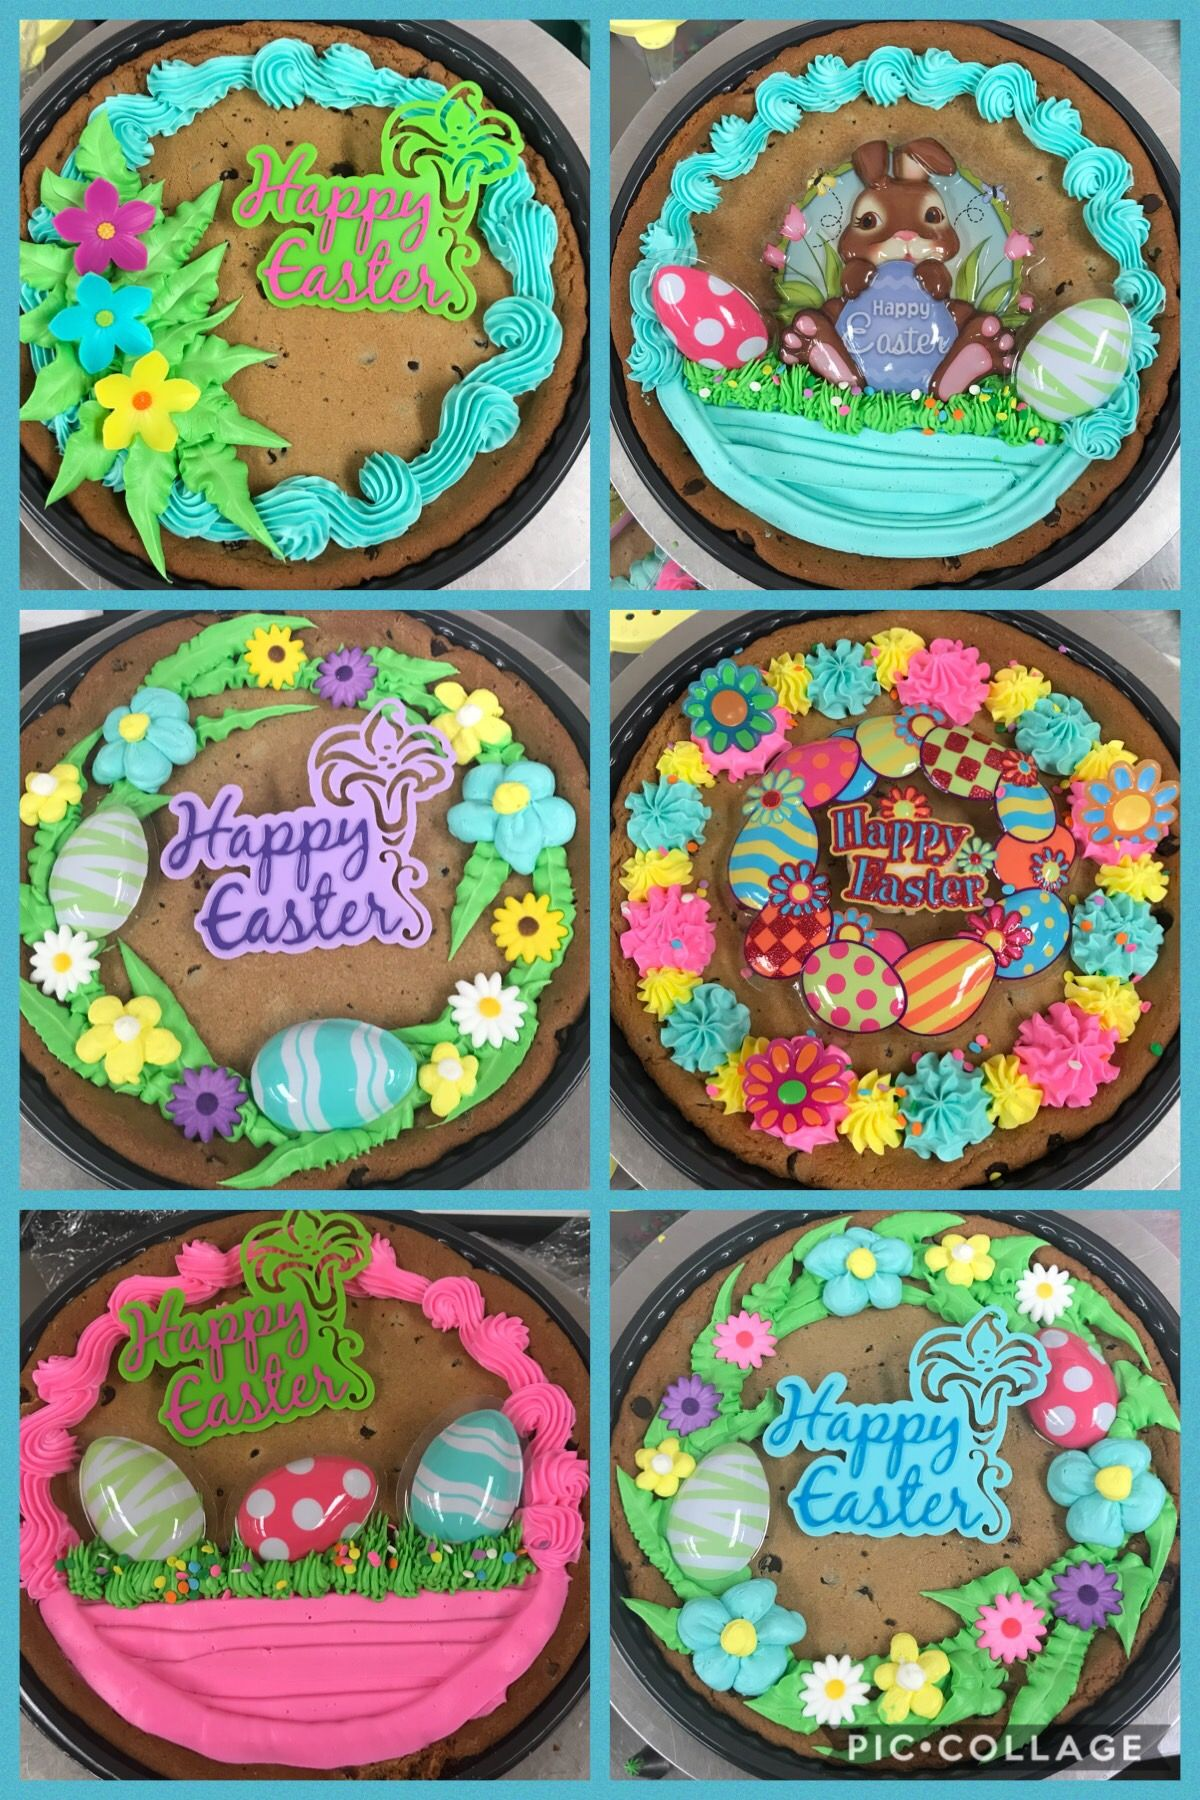 Easter Cakes And Cookie Cakes 2018 Easter Cake Designs Easter